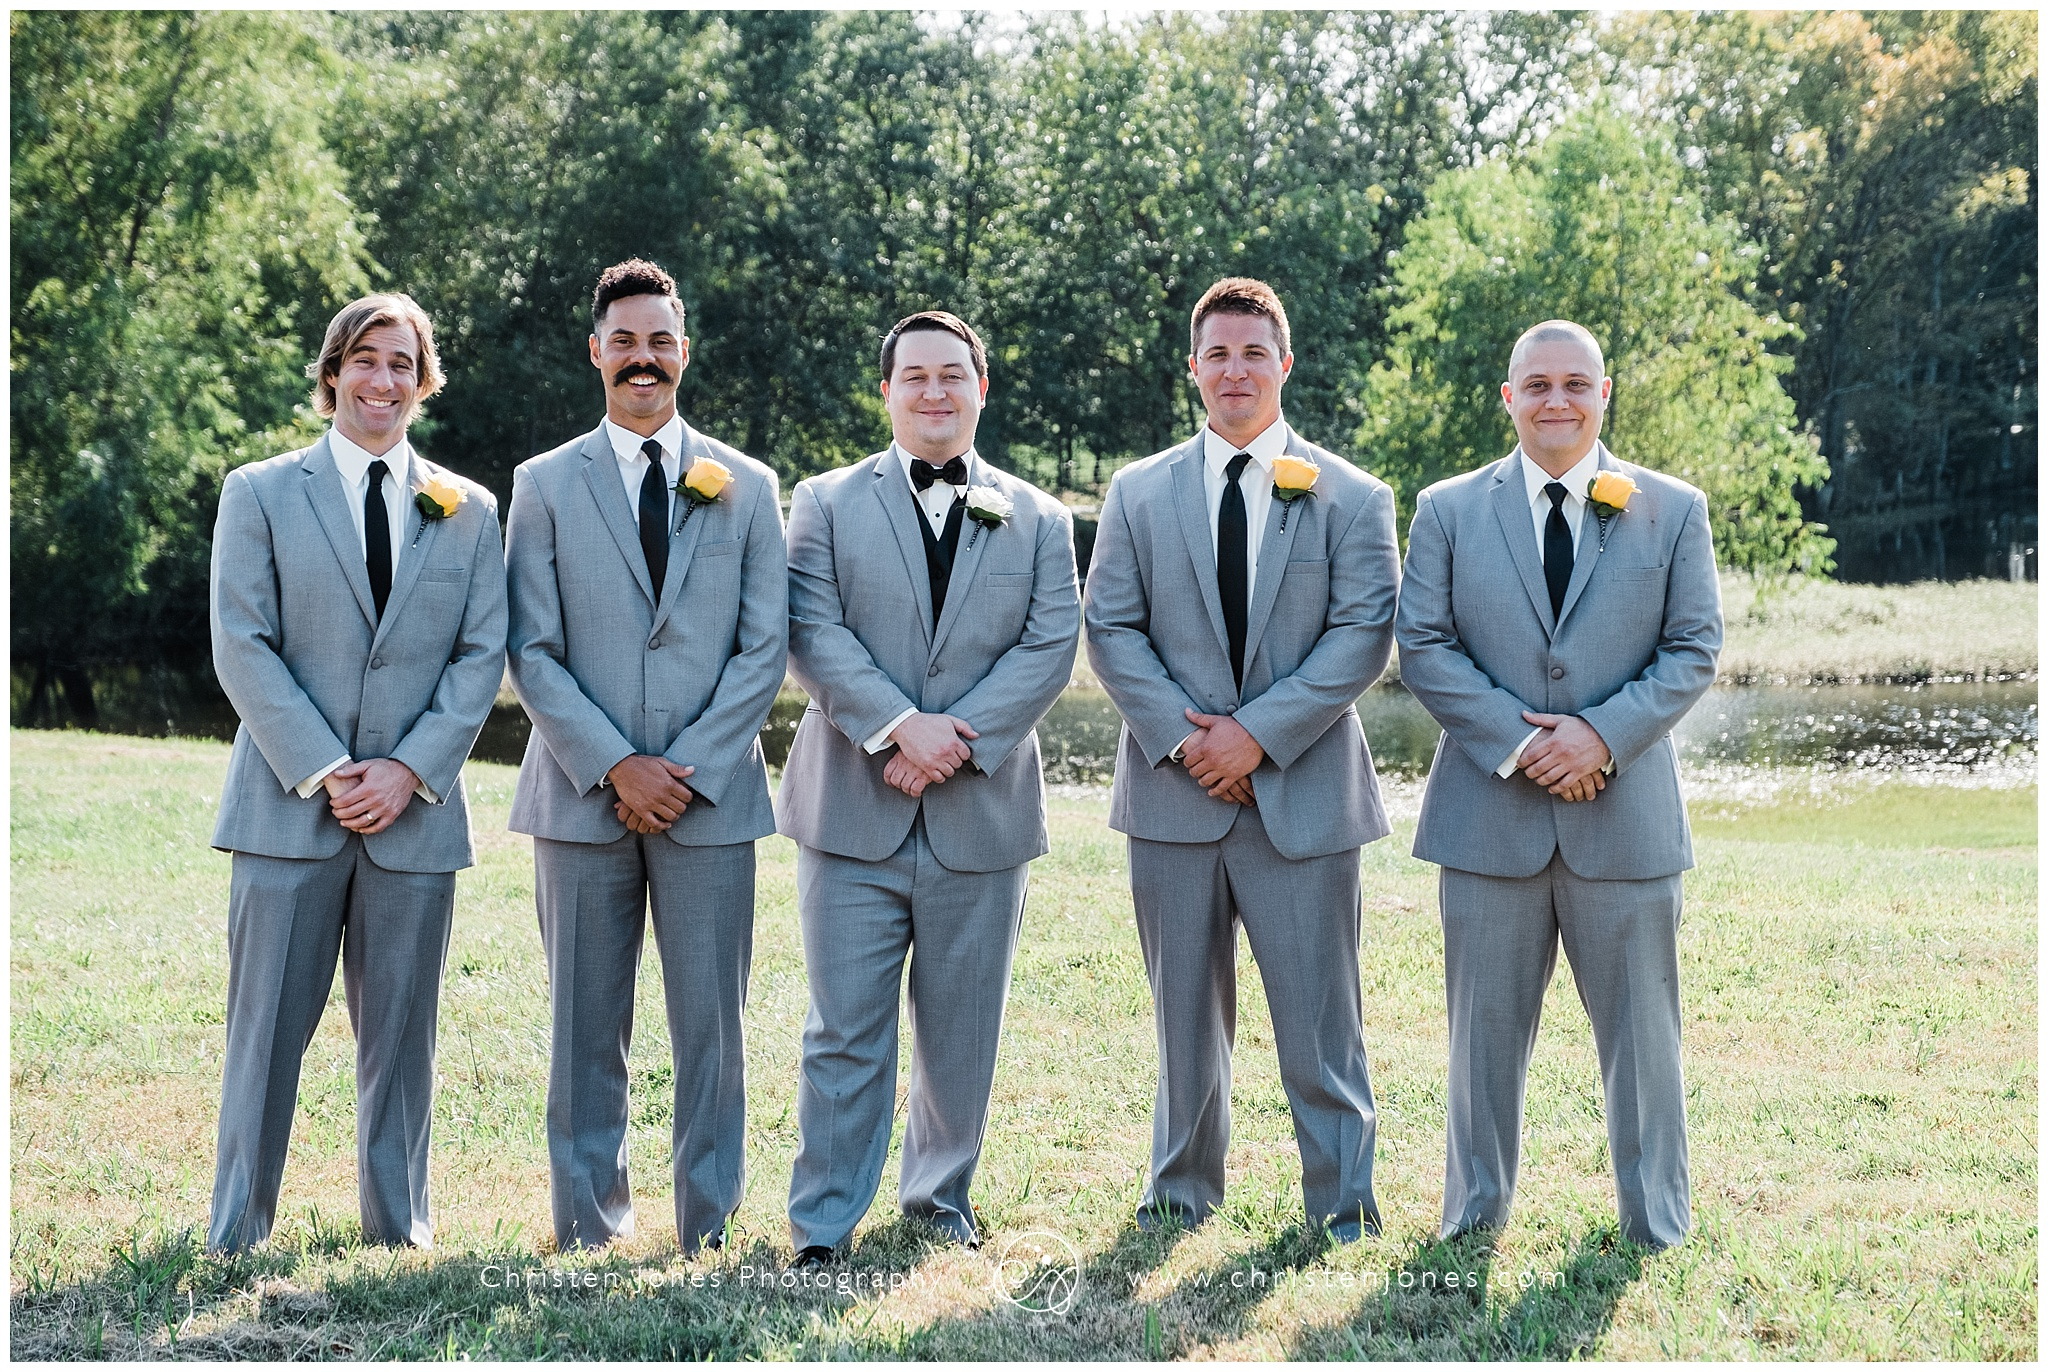 Sarah + Kenny || Wedding at FedEx Event Center at Shelby Farms ...